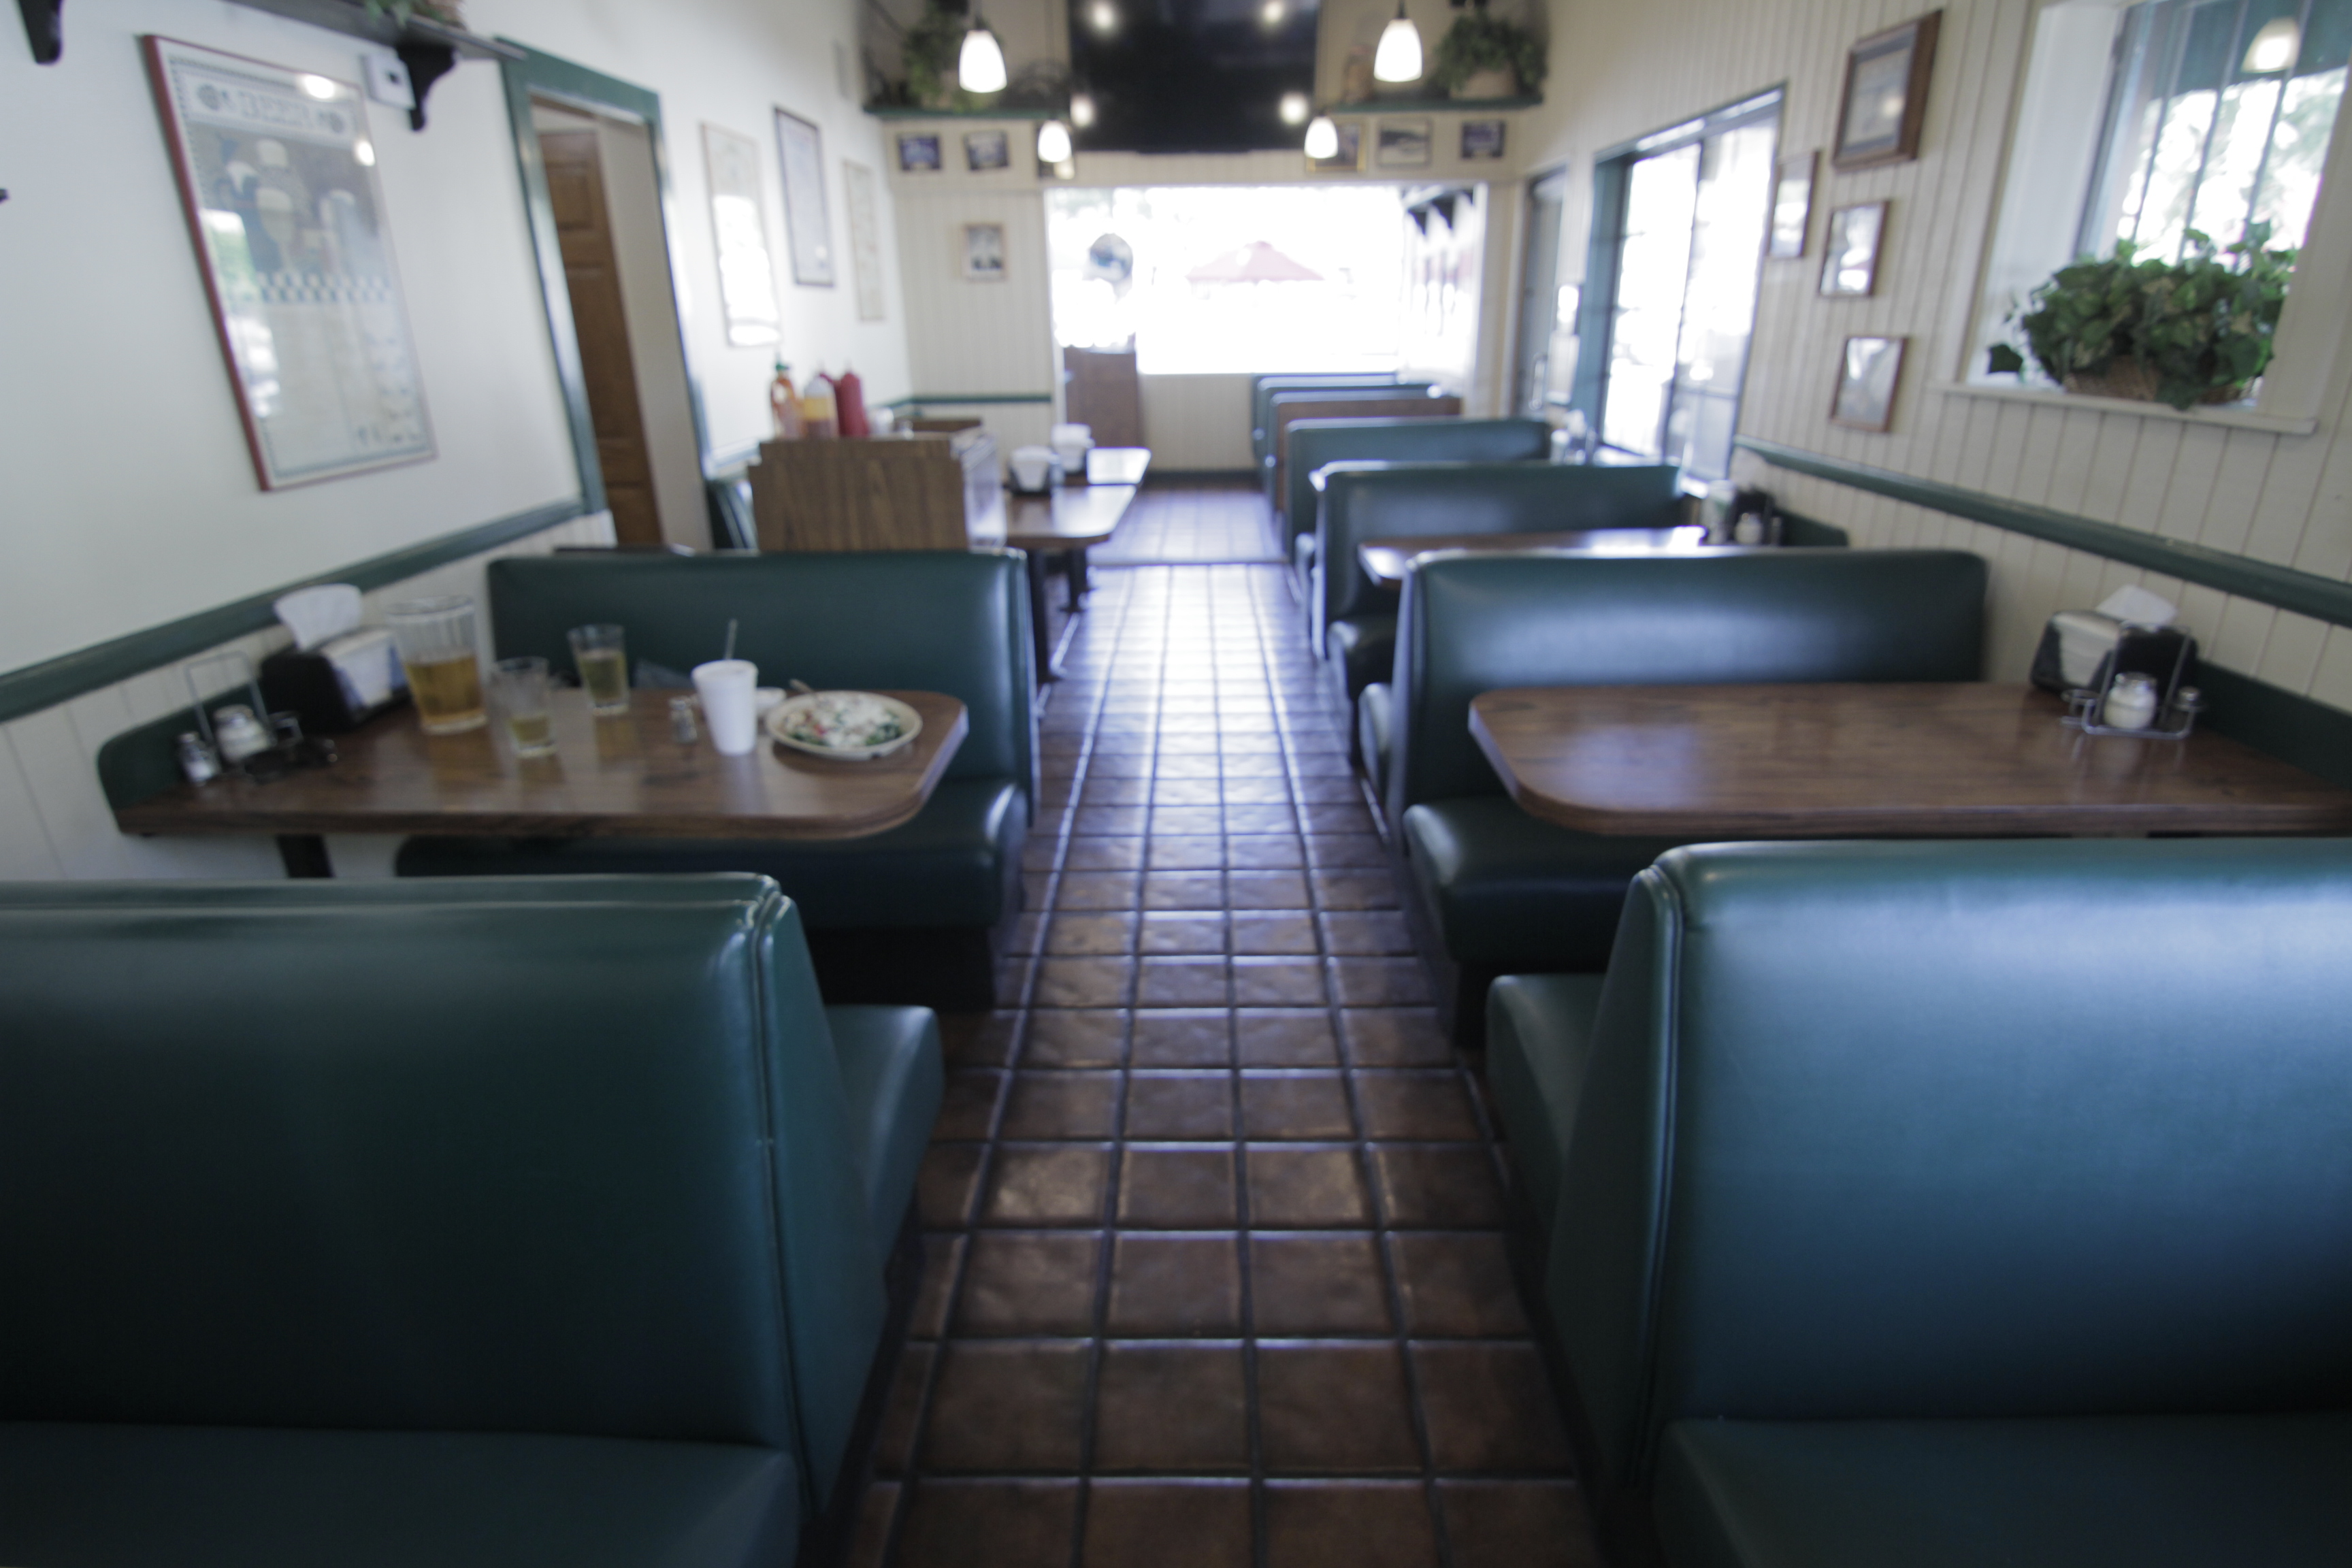 Pizzeria and Deli: An Italian Pizzeria and Deli that is very reminiscent of the 80's and 90's era. It offers a dinning room for 45 and outdoor patio siting.  Business Hours 10am-9:00pm Allows close down for extra pay. 1 floor.